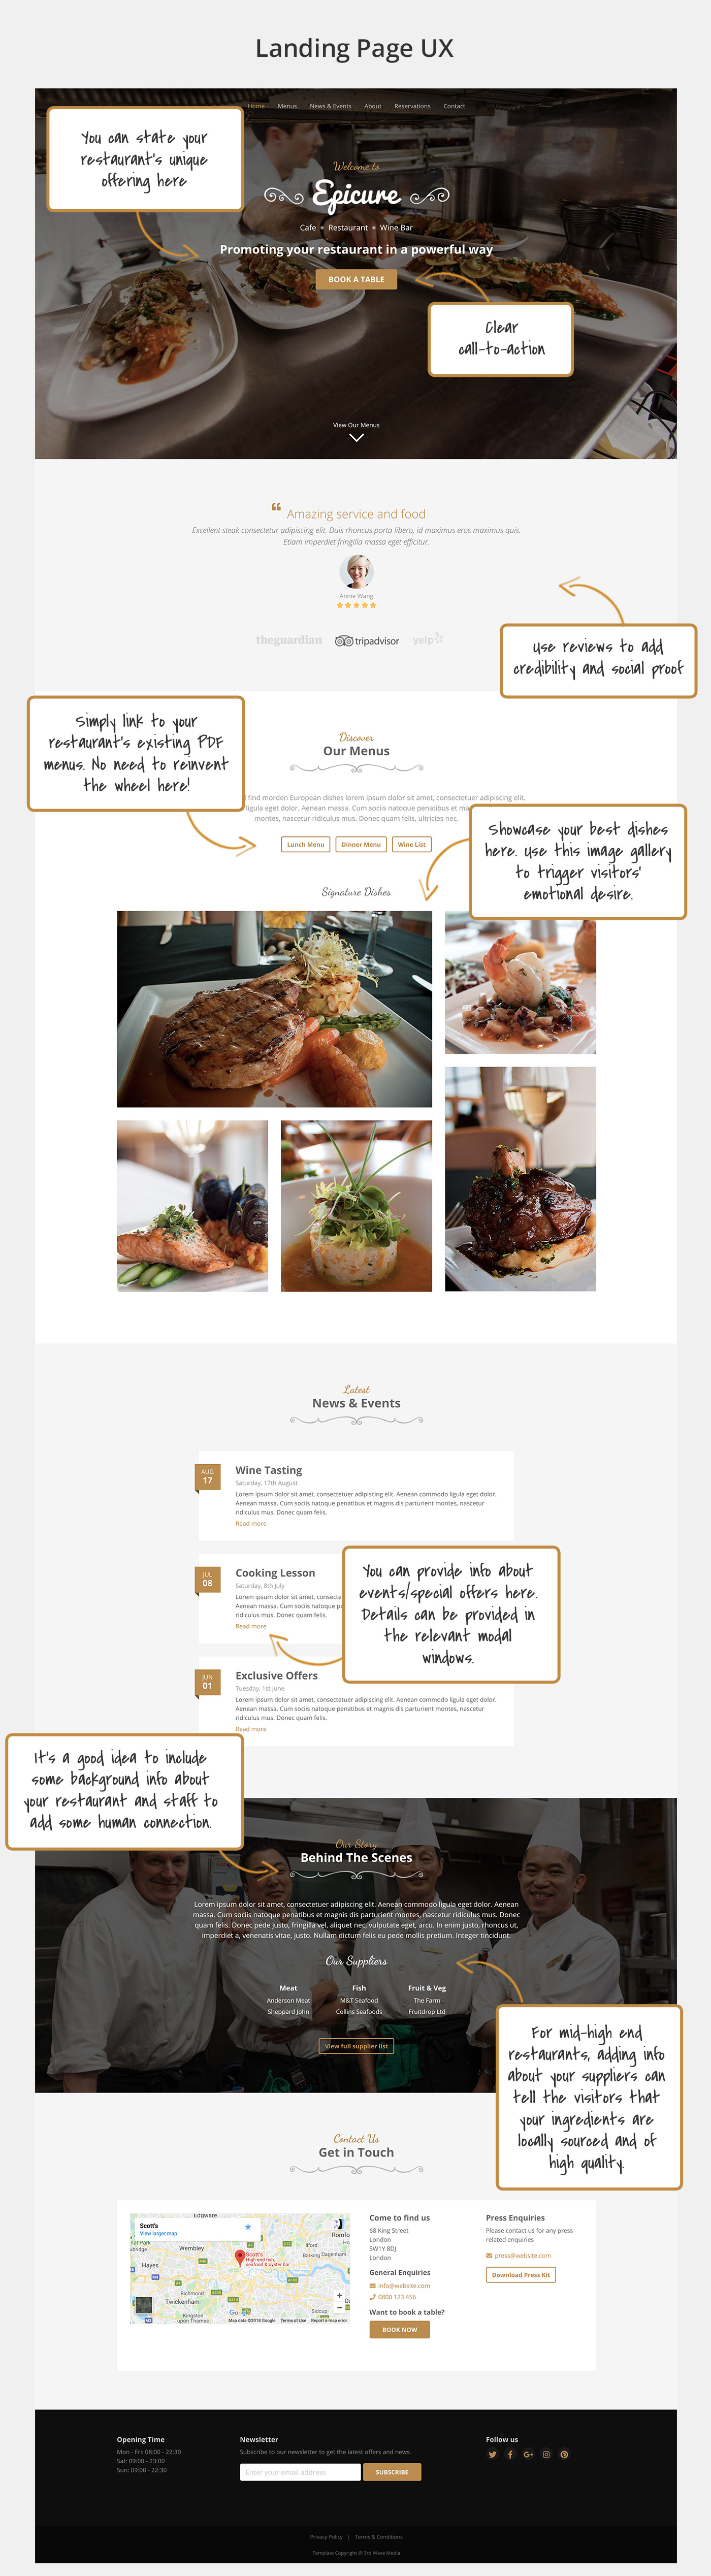 epicure-promo-with-ux-notes